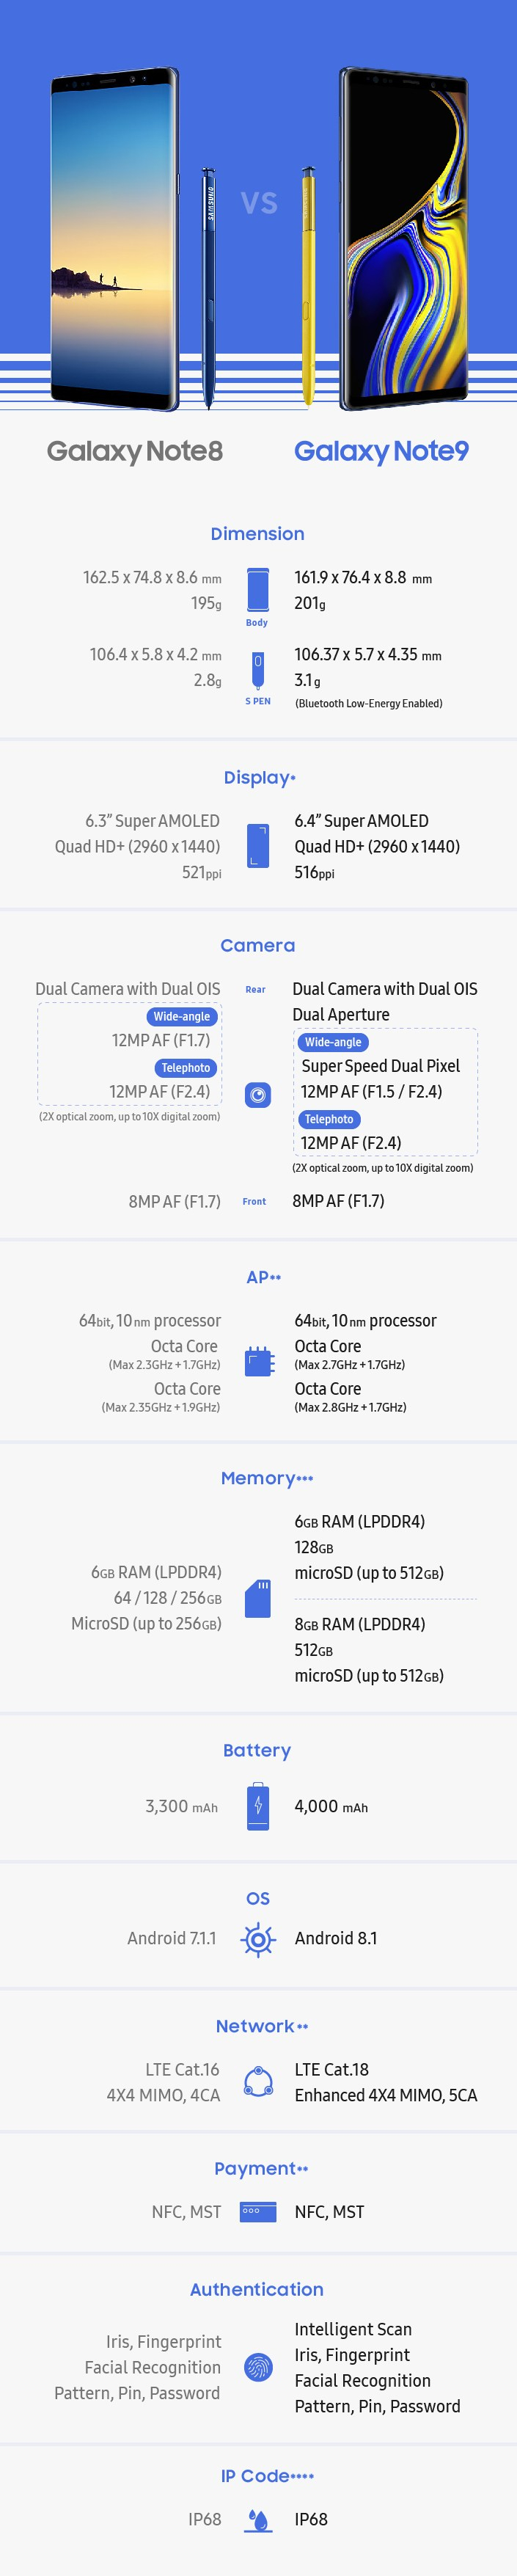 galaxy-note9-spec-comparison-en.jpg